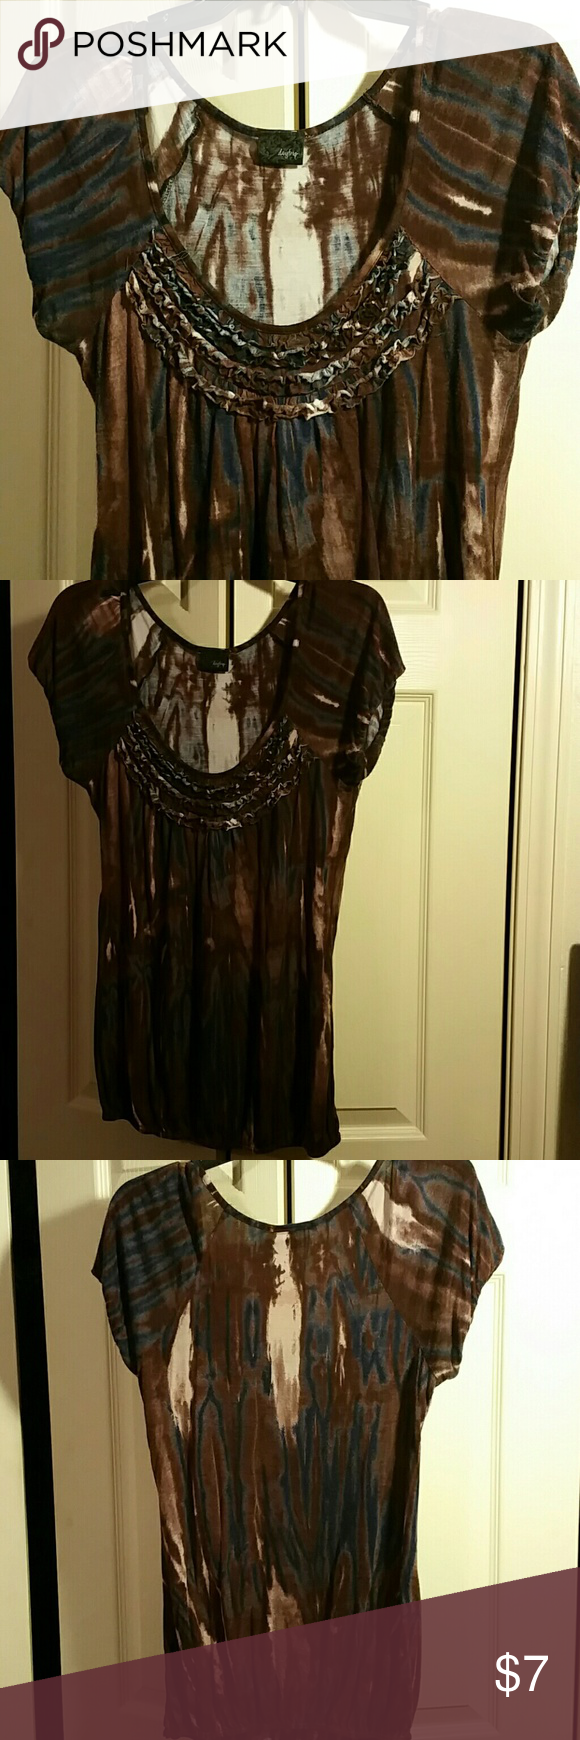 Beautiful Daytrip top Beautiful top from Daytrip. Tye dyed look I'd colors of dark blue, brown and cream. Cute ruffles at the necklone. Elastic at sleeves and hem. It's a little faded but still has a lot of life left in it. Daytrip Tops